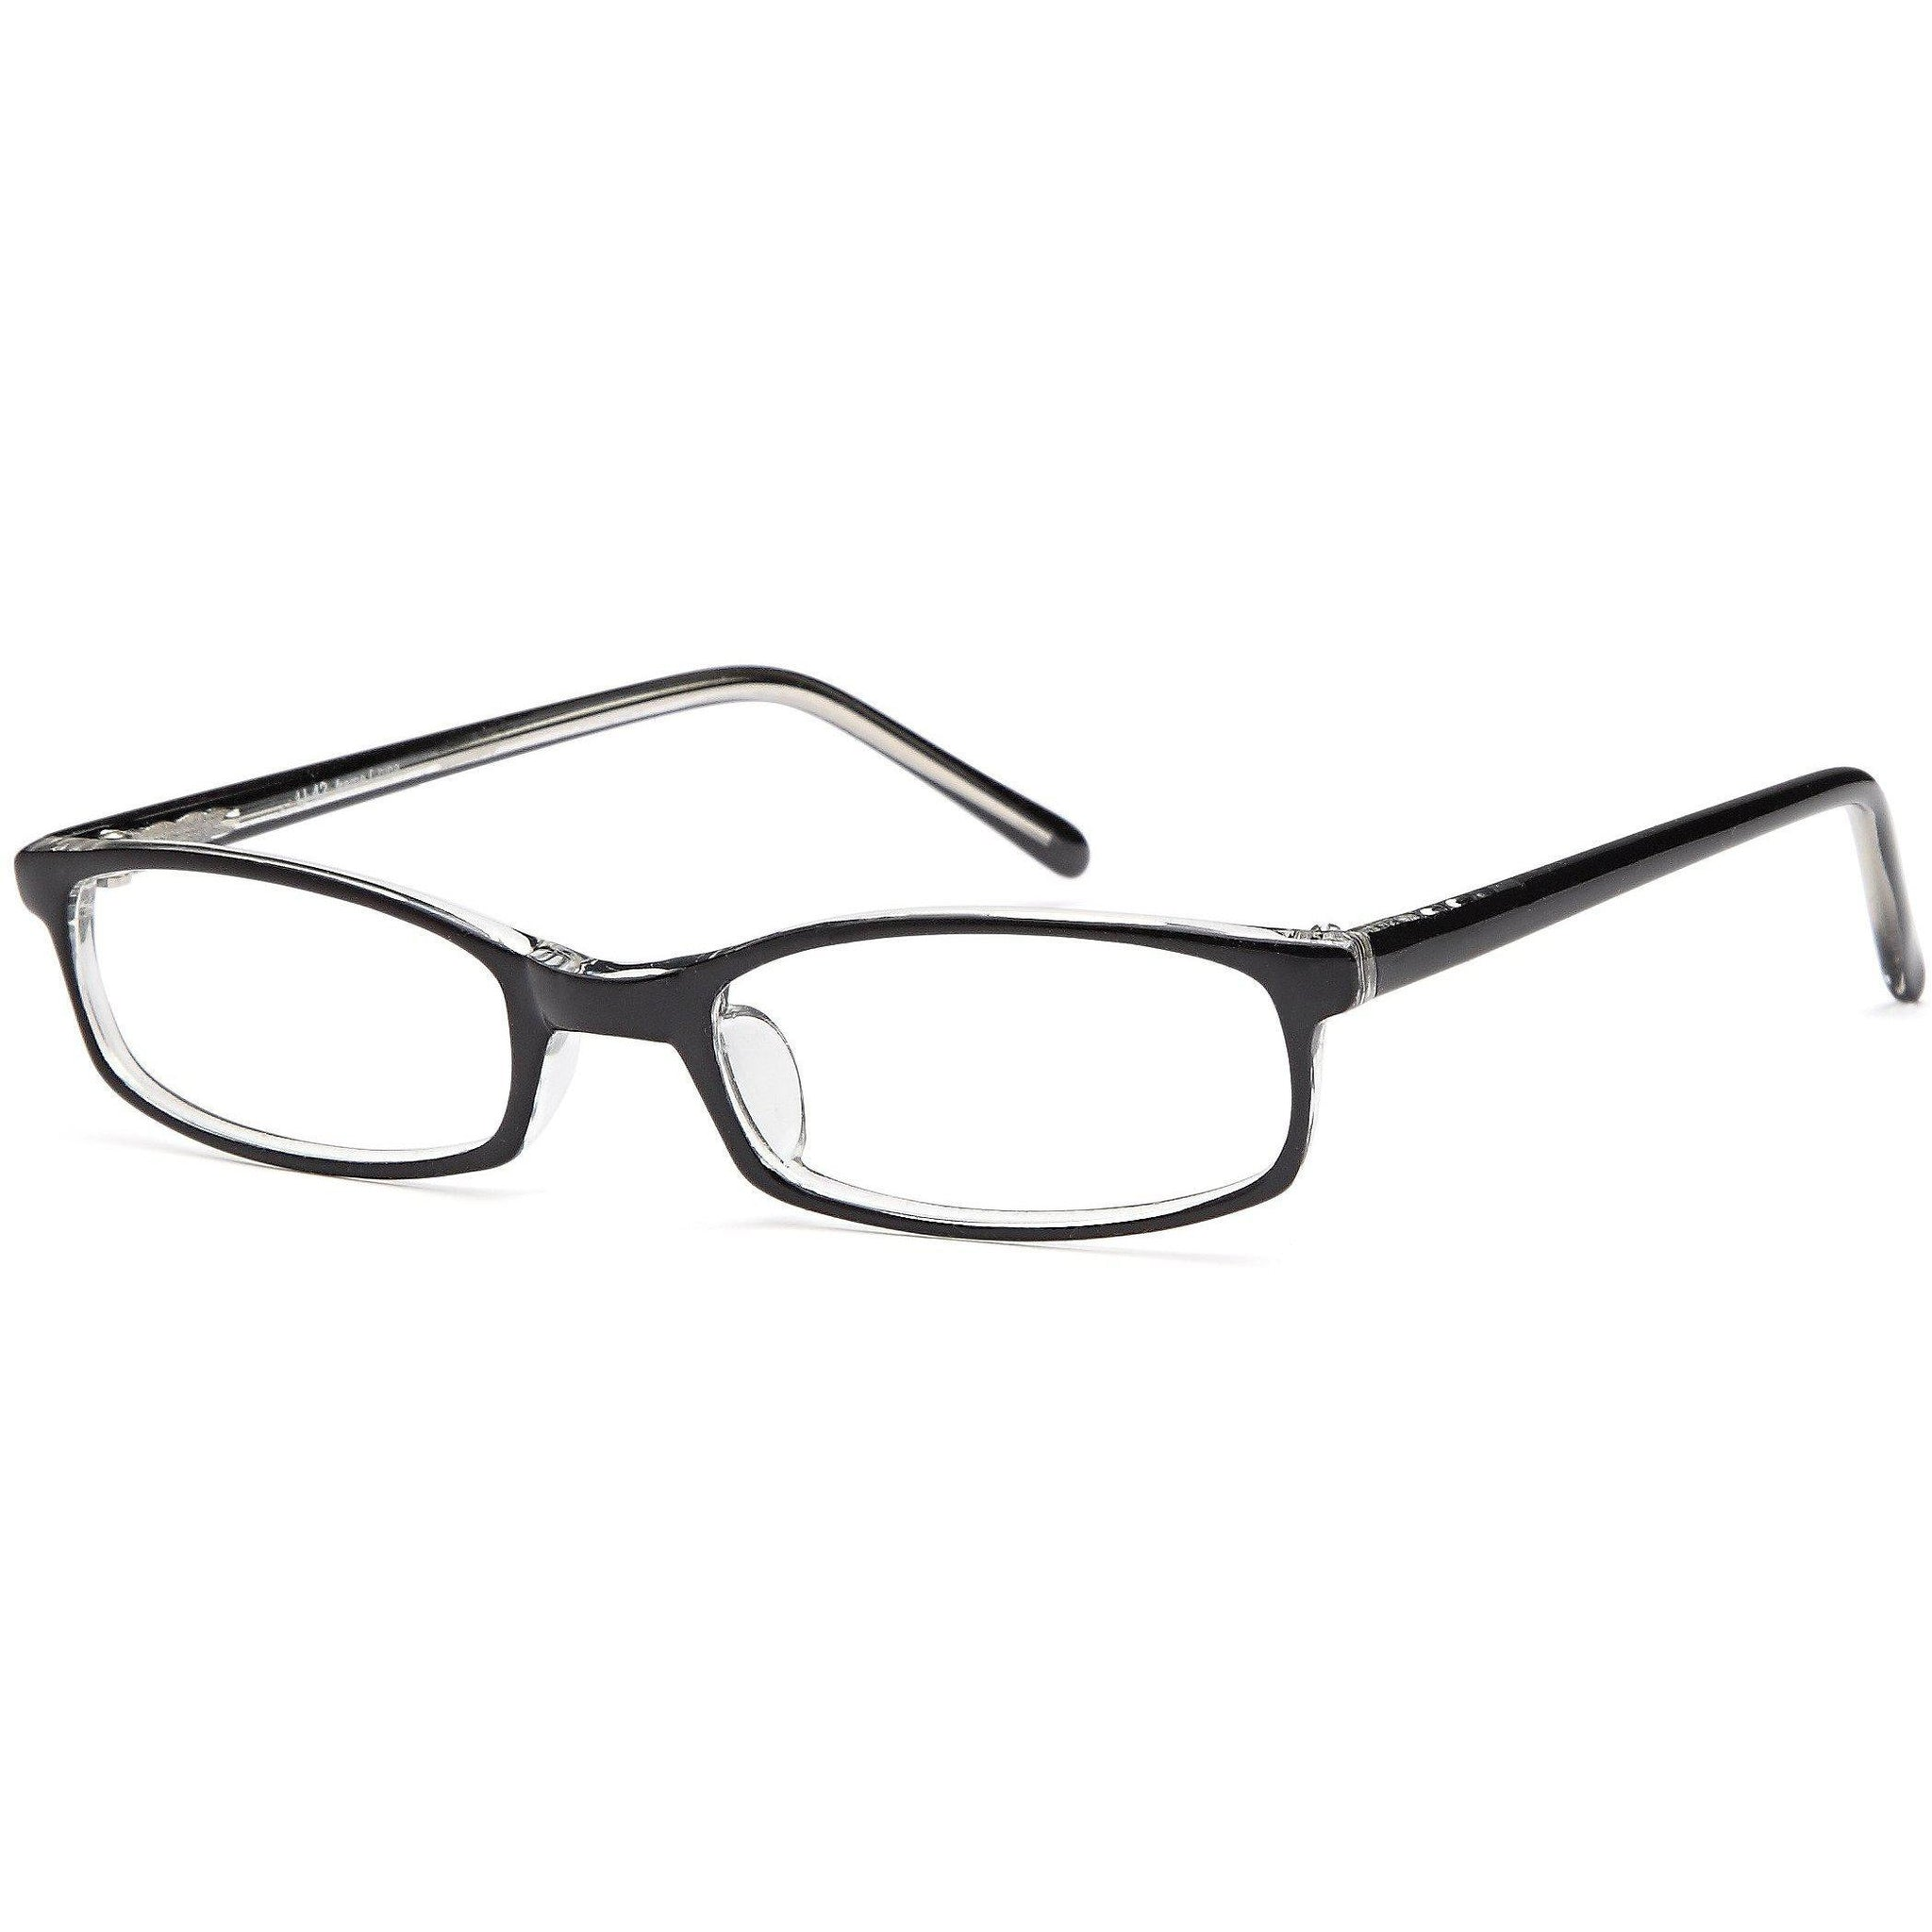 4U Prescription Glasses U 42 Optical Eyeglasses Frame - timetoshade